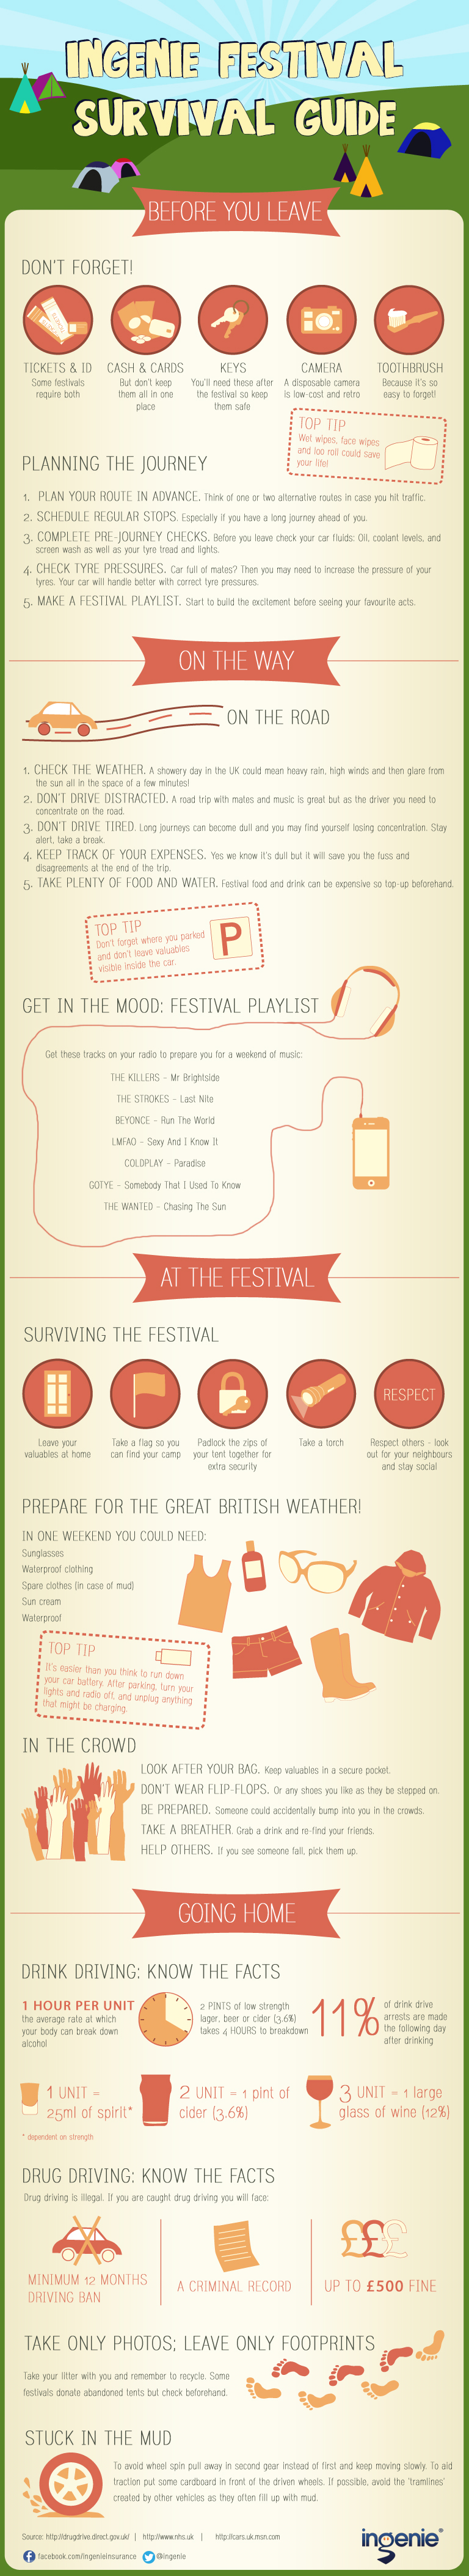 ingenie Festival Survival Guide